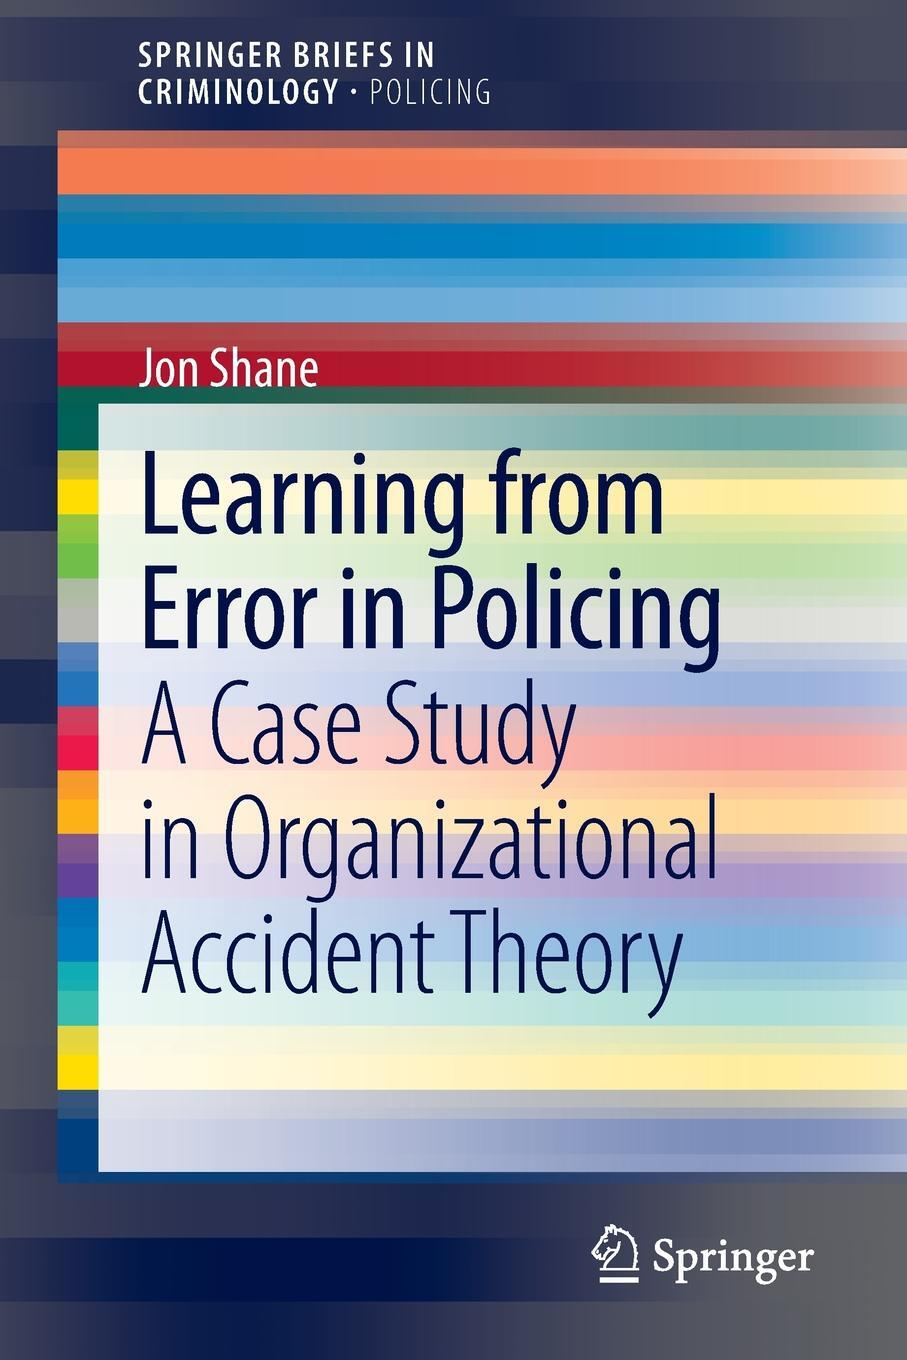 Learning from Error in Policing. A Case Study in Organizational Accident Theory. Jon Shane